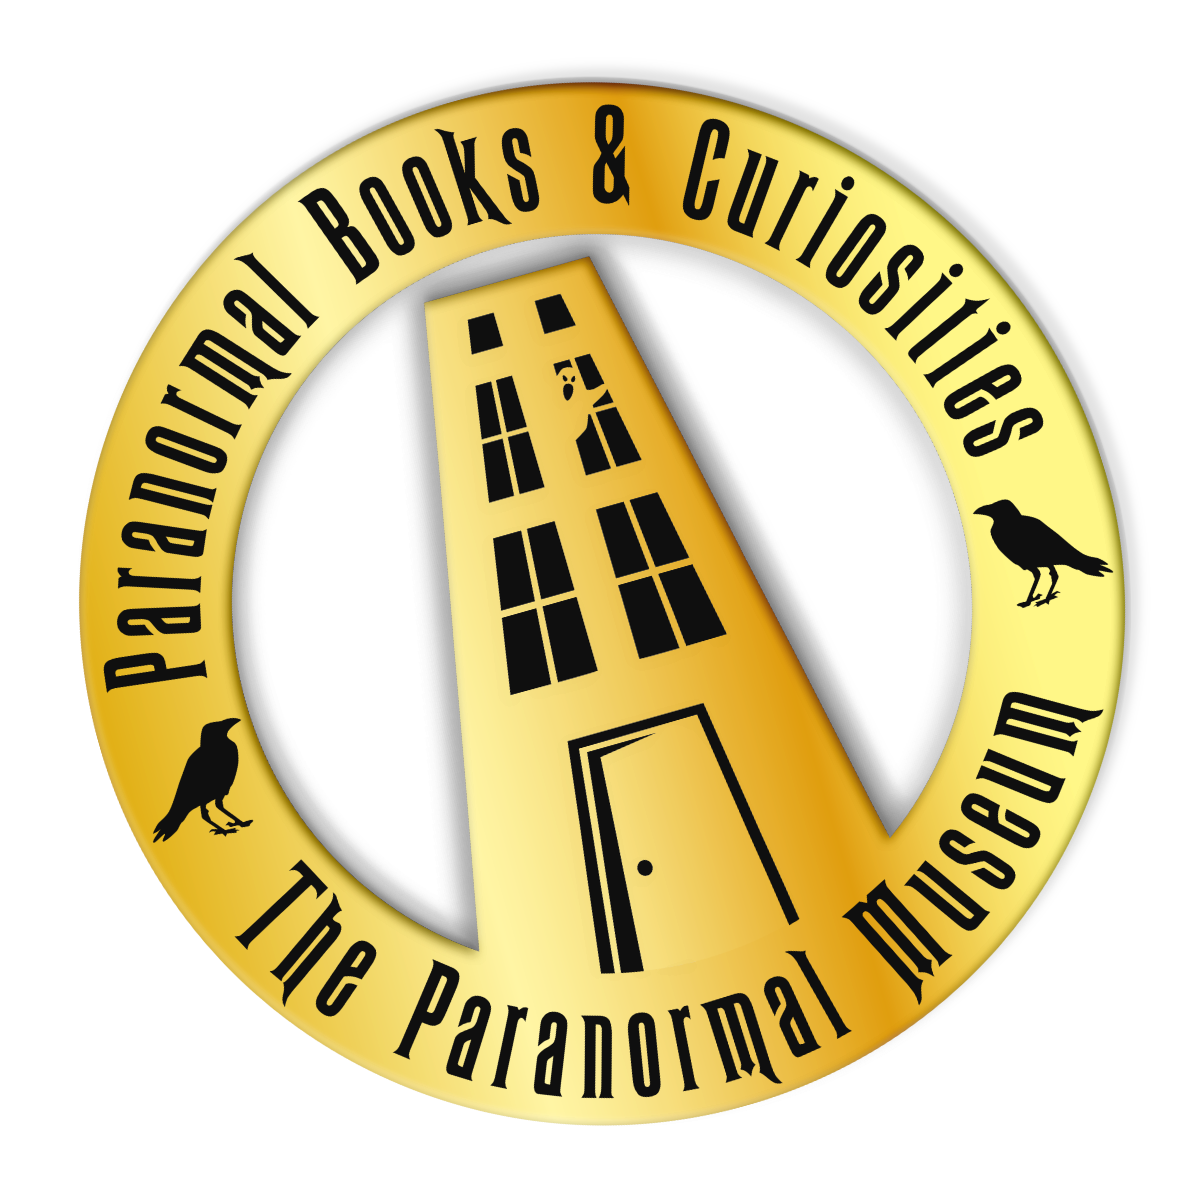 Paranormal Books NJ